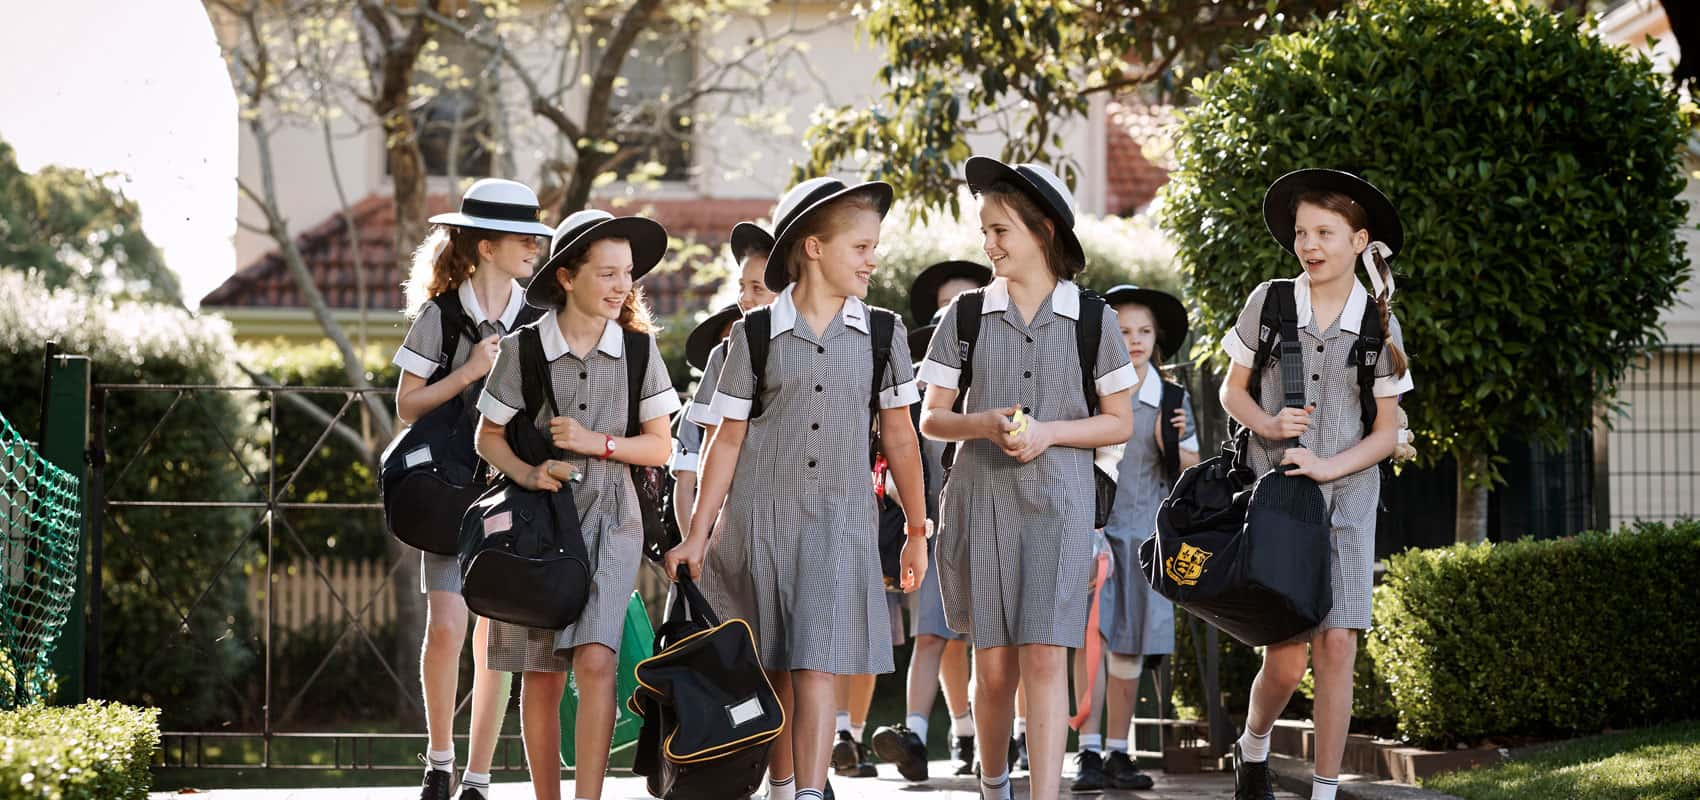 Abbotsleigh Private Girls School